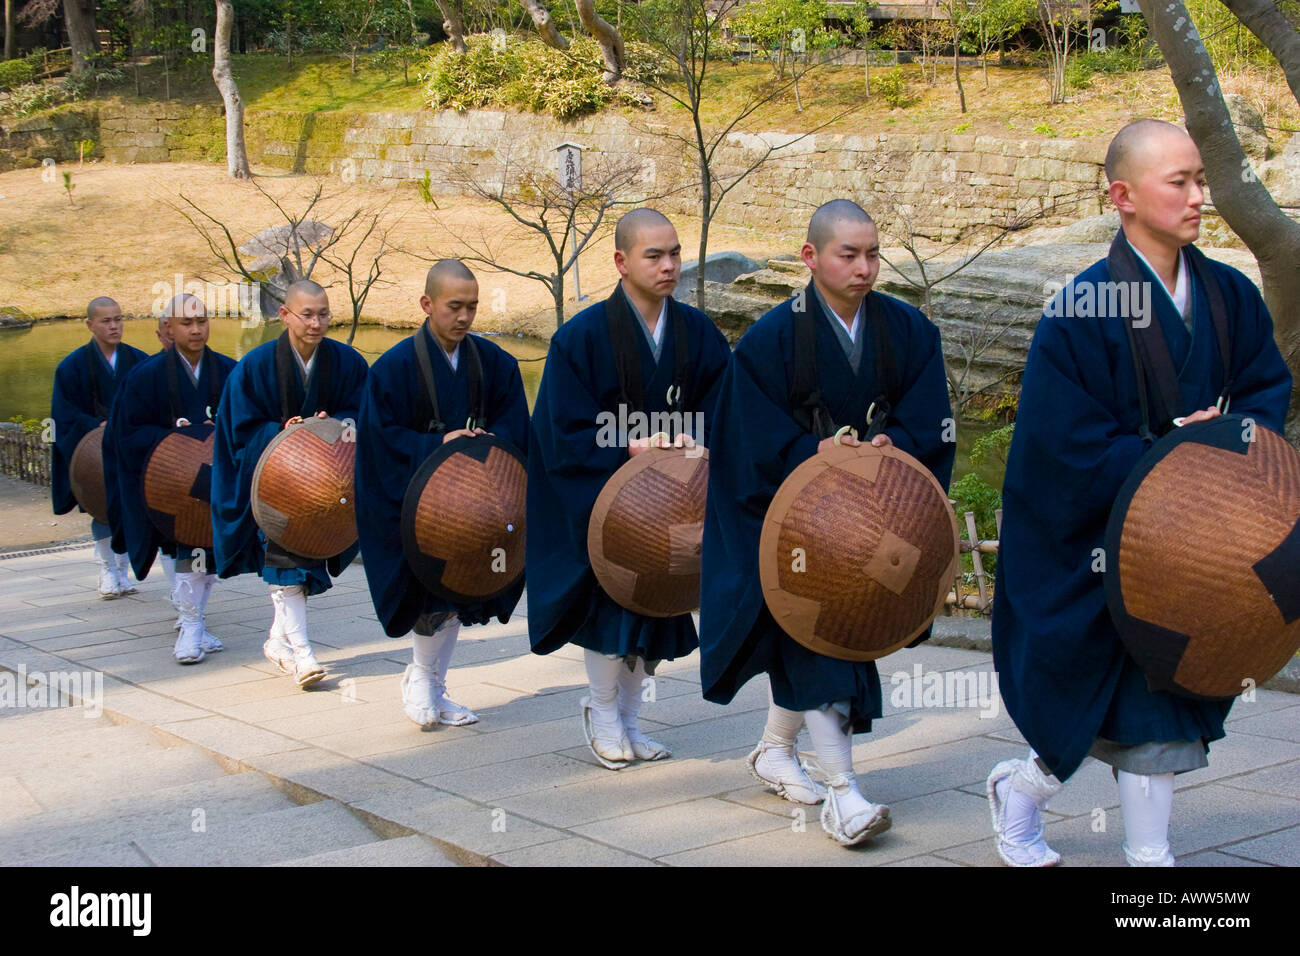 Monks in blue robes walking in a row in the Zen Buddhist Temple of Engakuji in Kamakura Japan - Stock Image